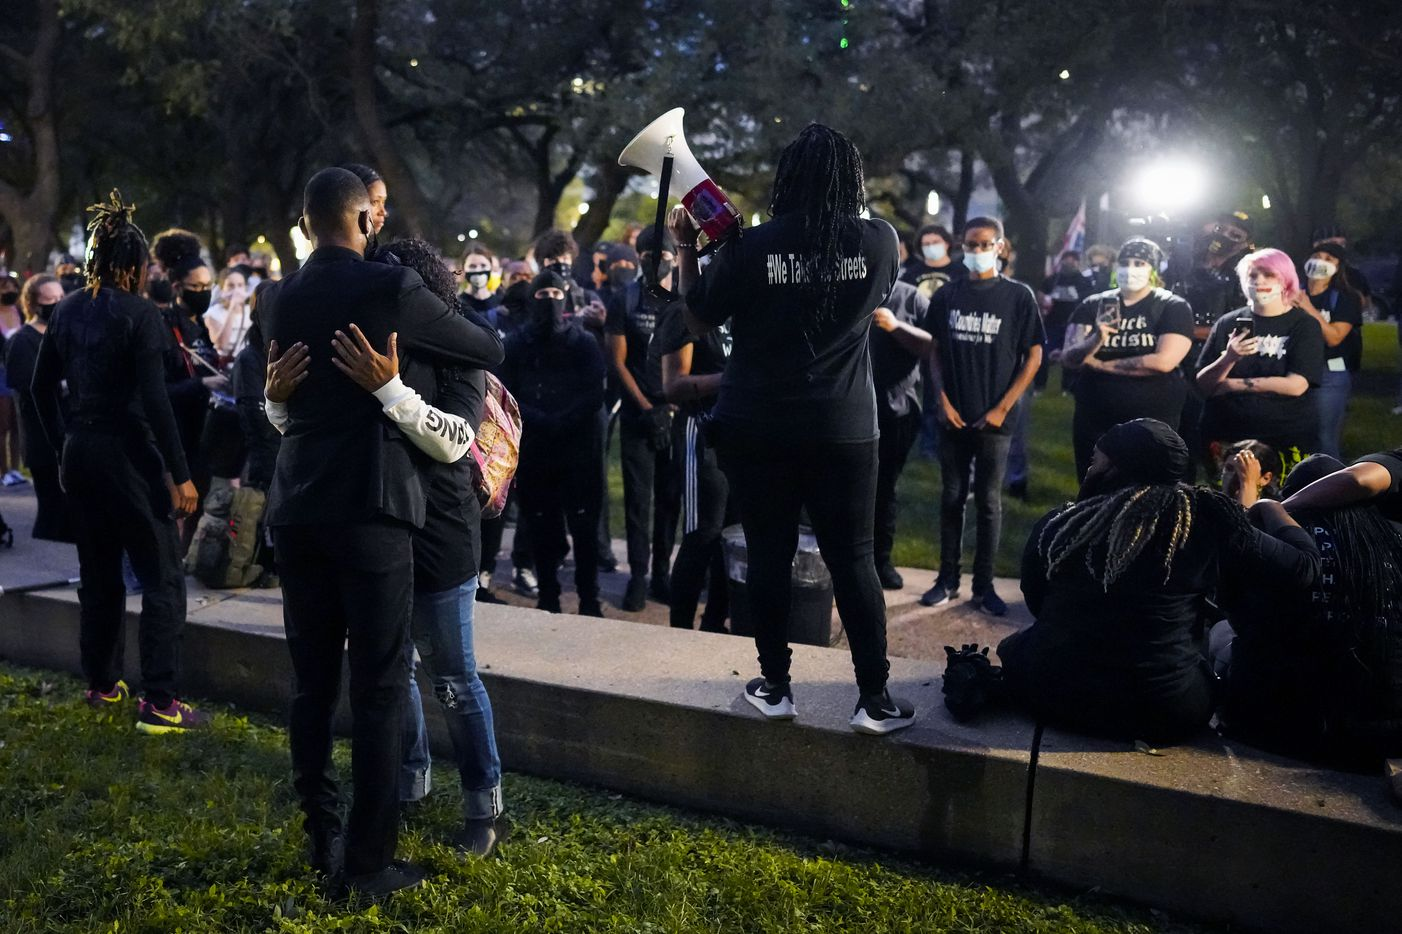 Demonstrators gather during a rally at Dallas City Hall after a Kentucky grand jury brought no charges against Louisville police for the killing of Breonna Taylor on Wednesday, Sept. 23, 2020.